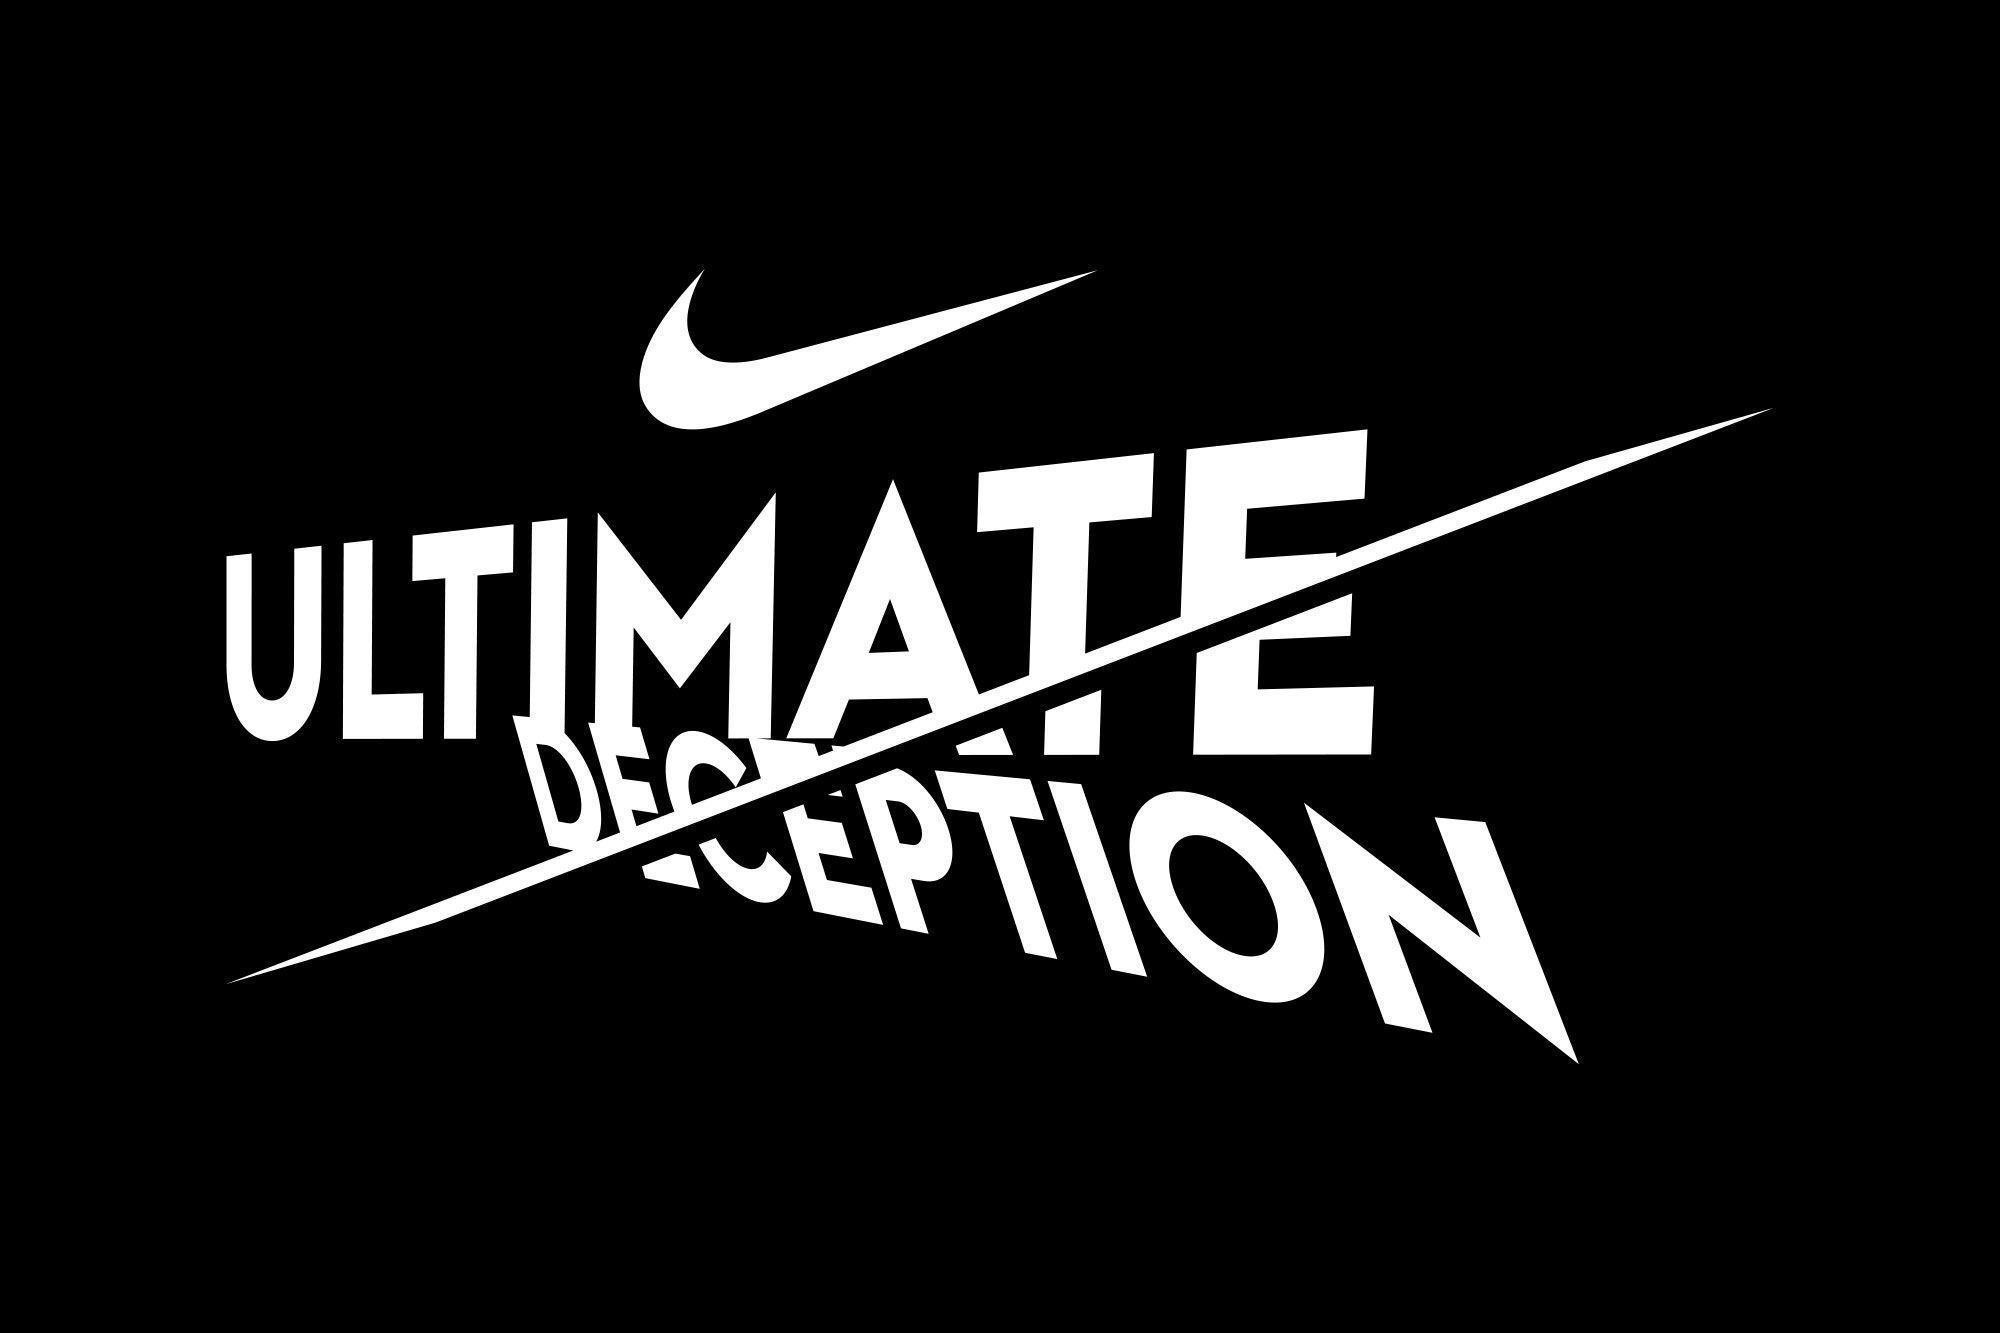 Nike Logo Wallpapers Hd 69 Background Pictures